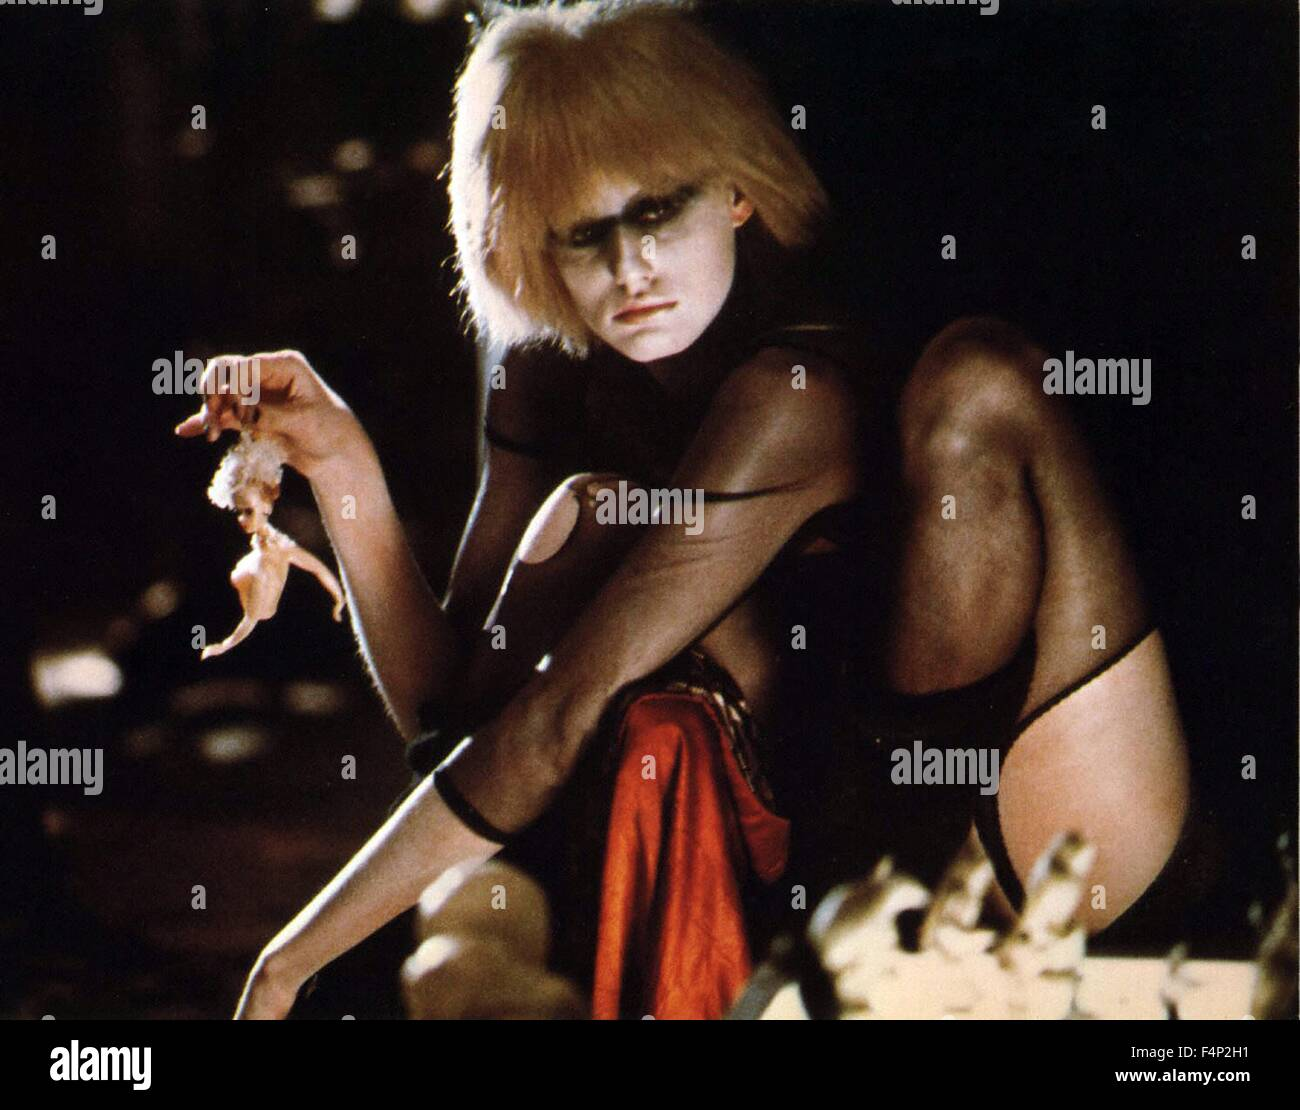 Daryl Hannah / Blade Runner 1982 directed by Ridley Scott - Stock Image